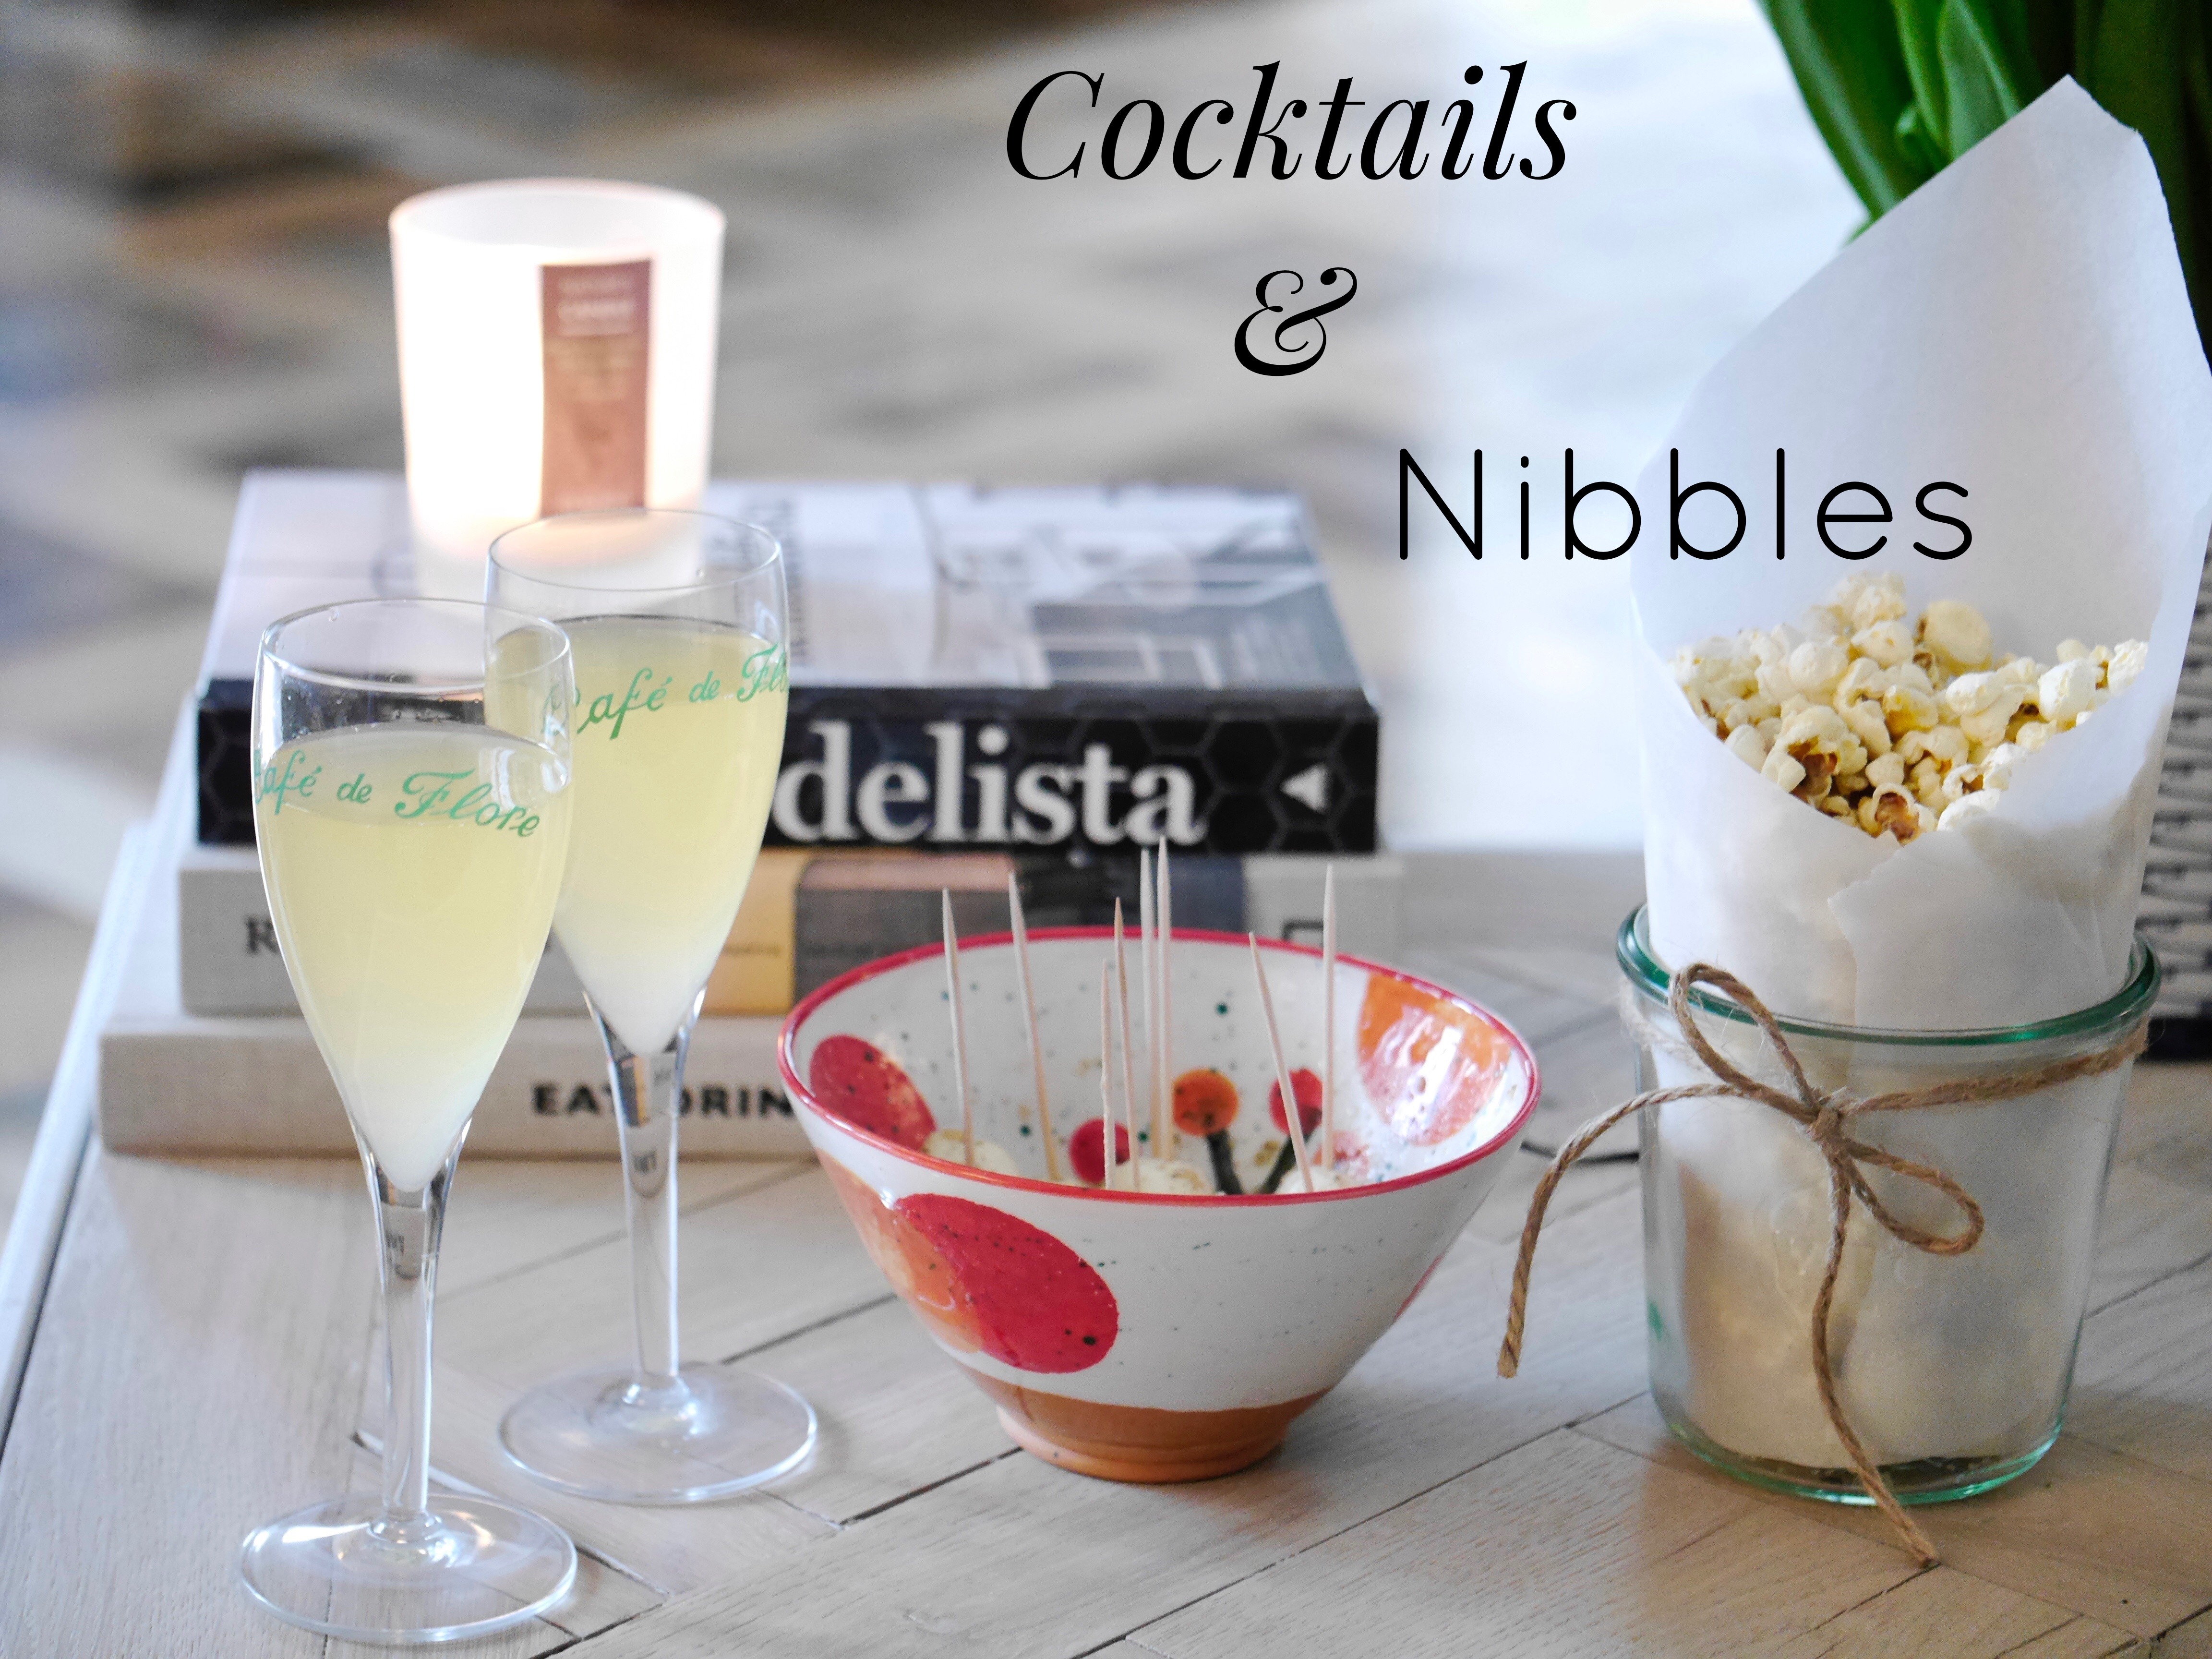 Cocktails & Nibbles